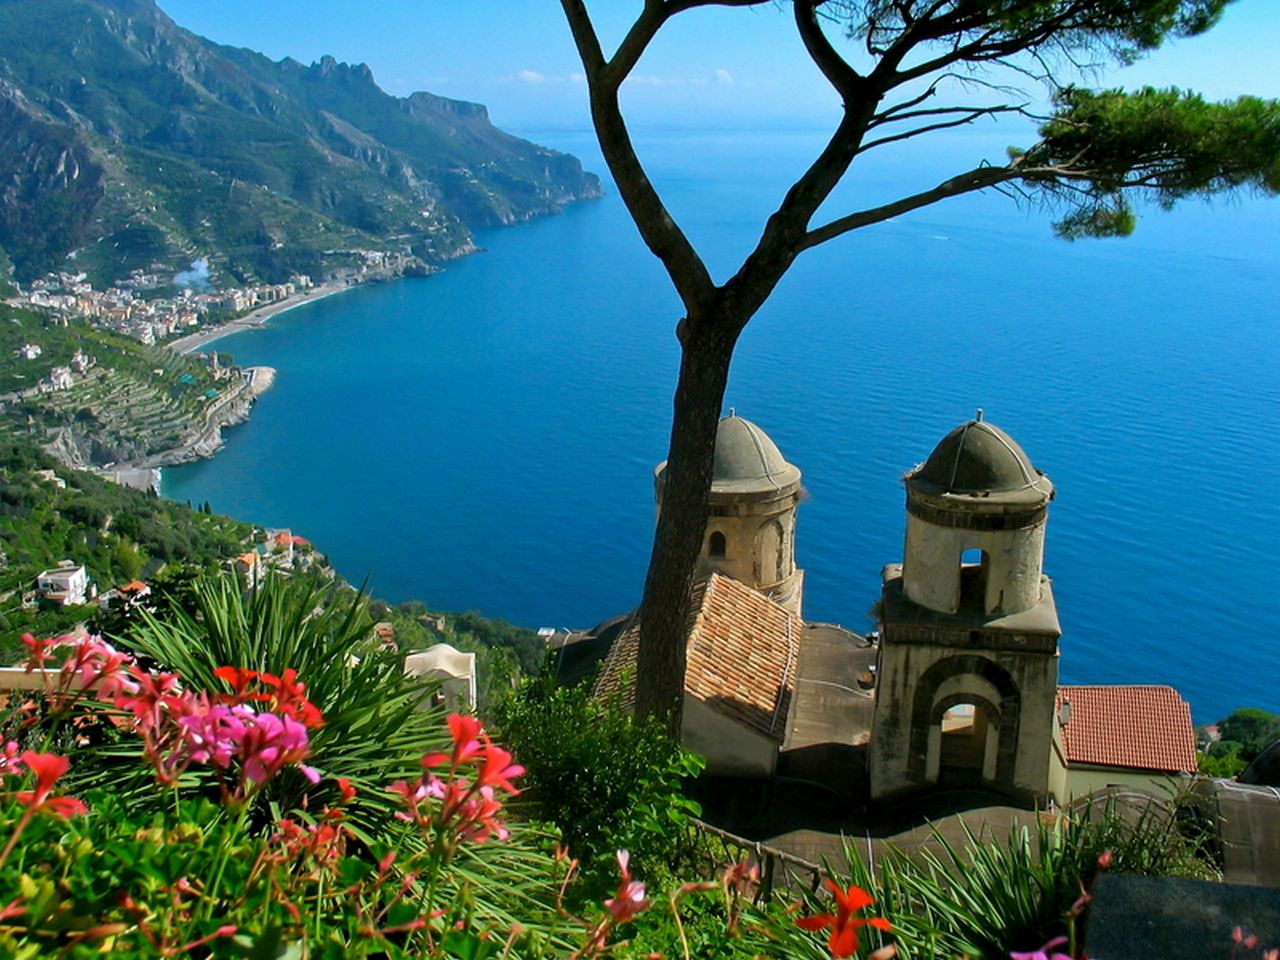 Private Sightseeing Tours Of The Amalfi Coast Private